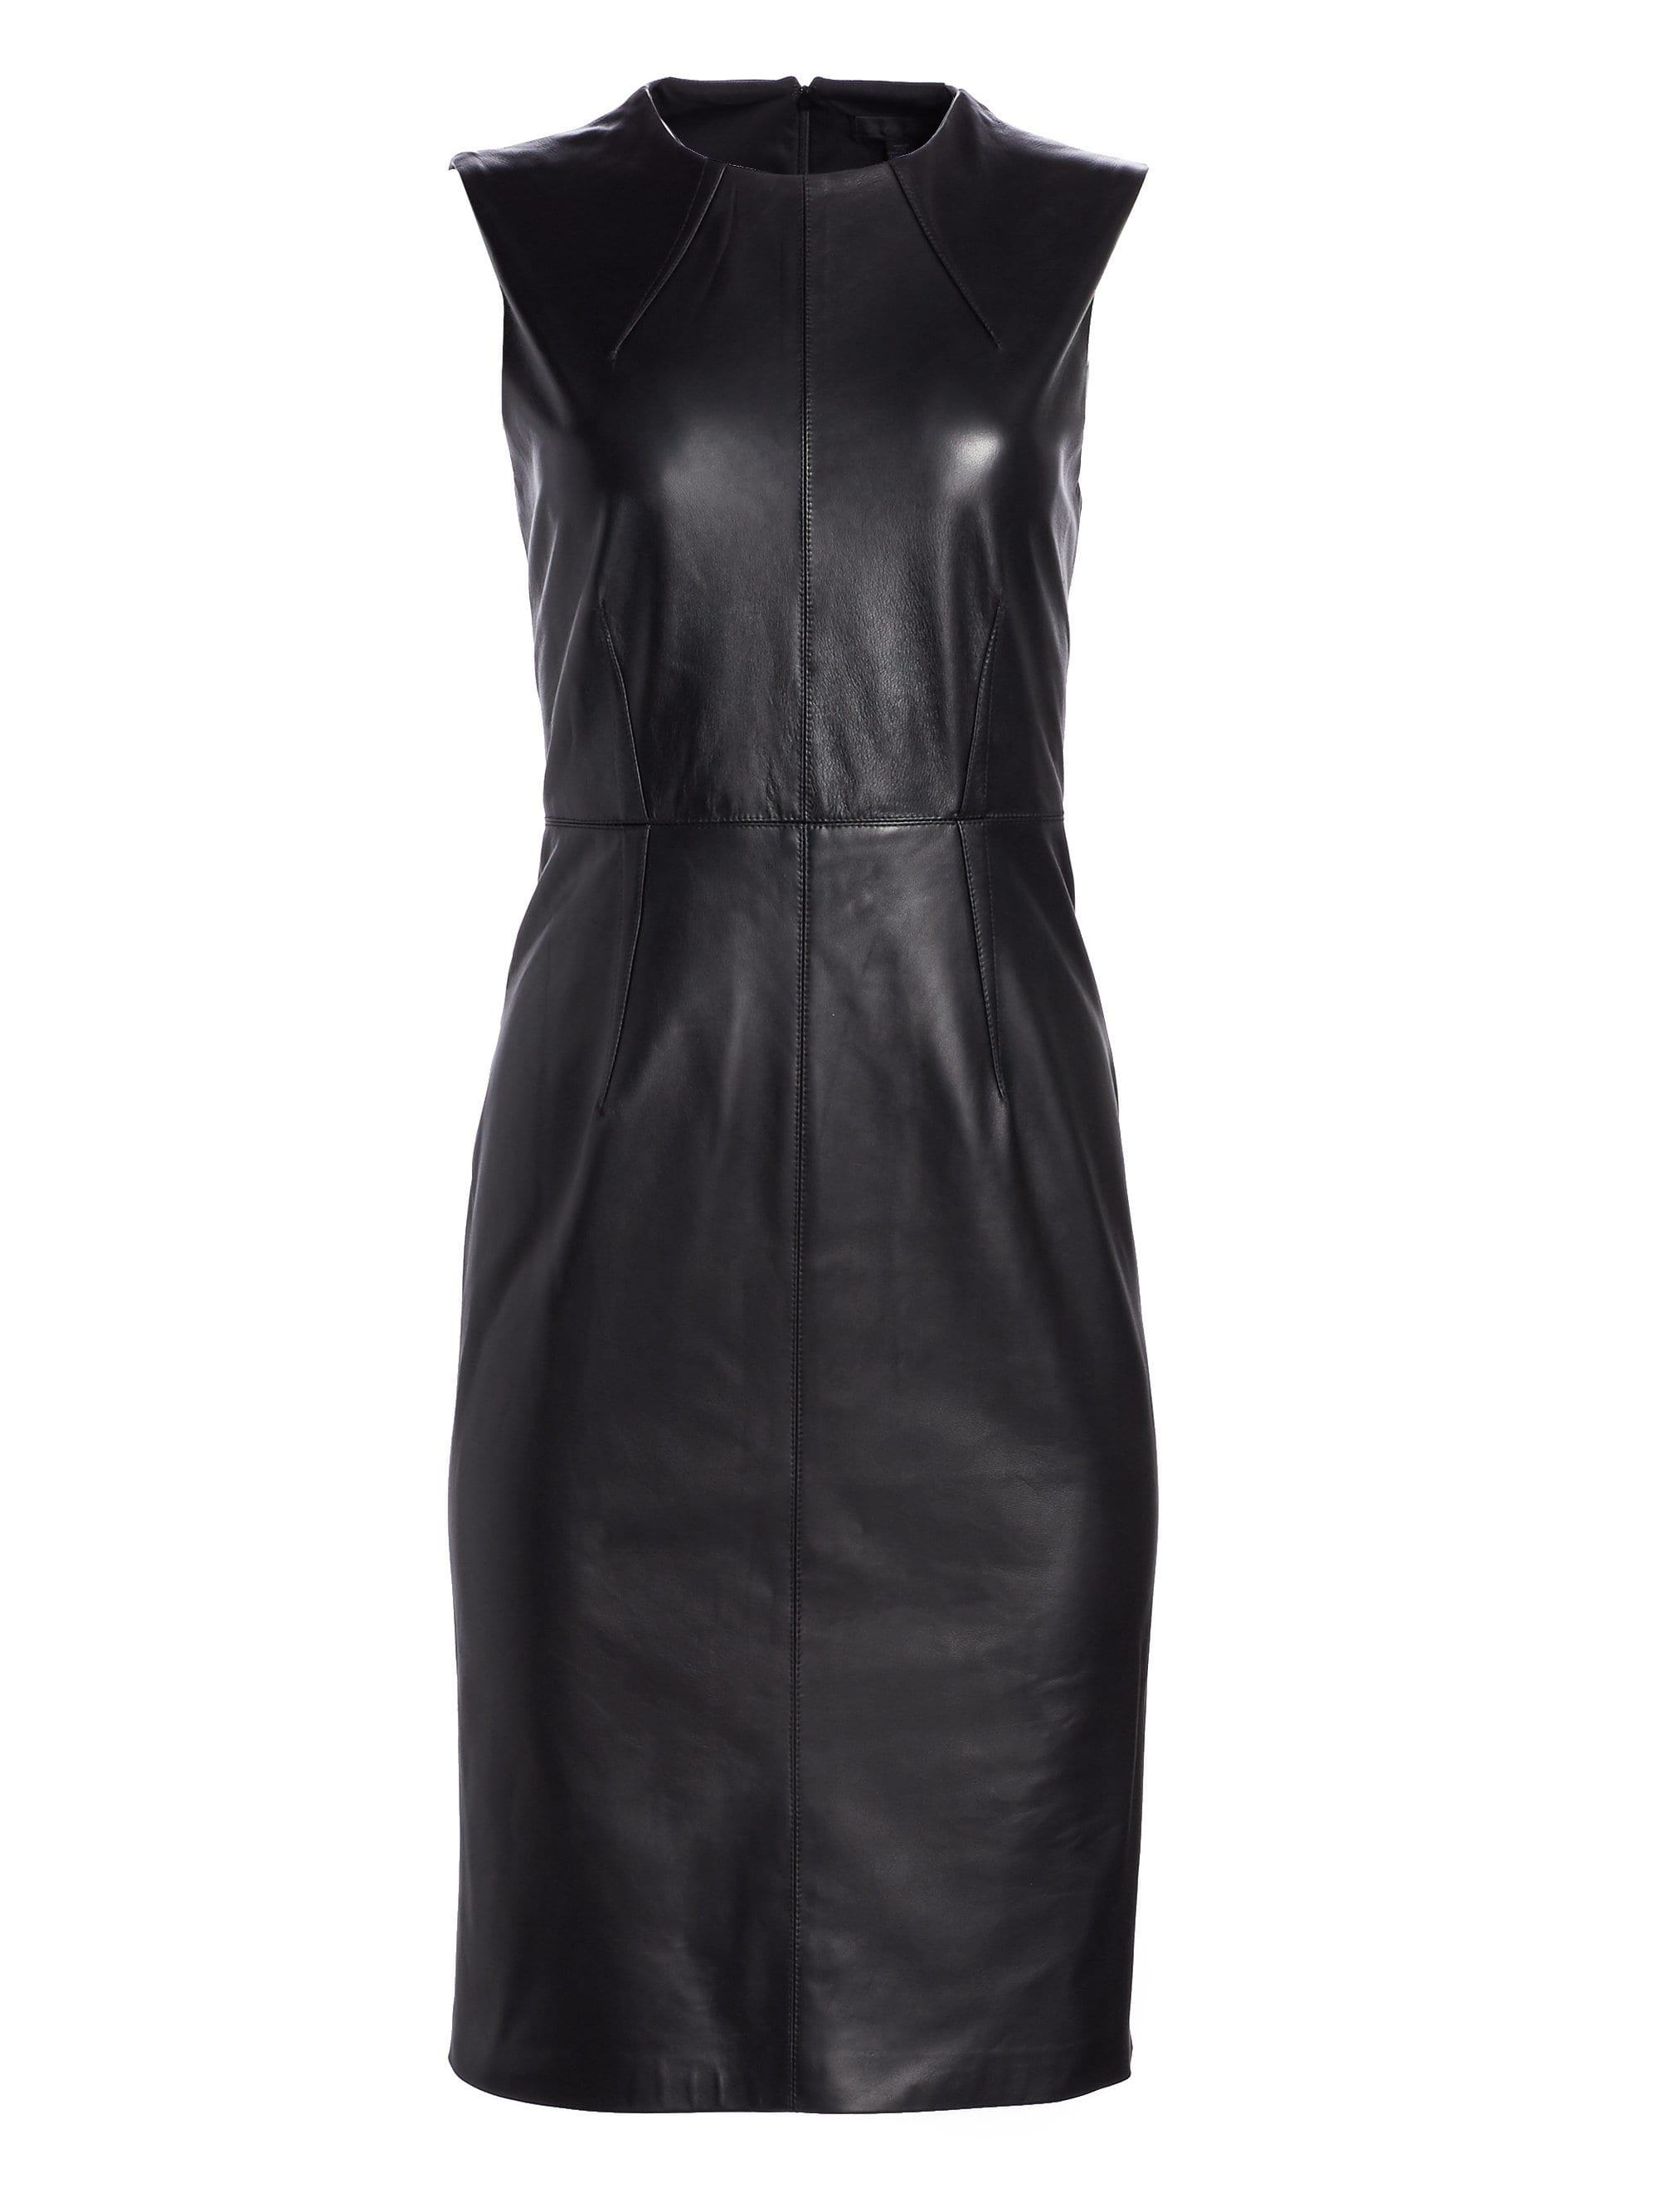 abb904afda9 Saks Fifth Avenue Collection Leather Sheath Dress in Black - Lyst